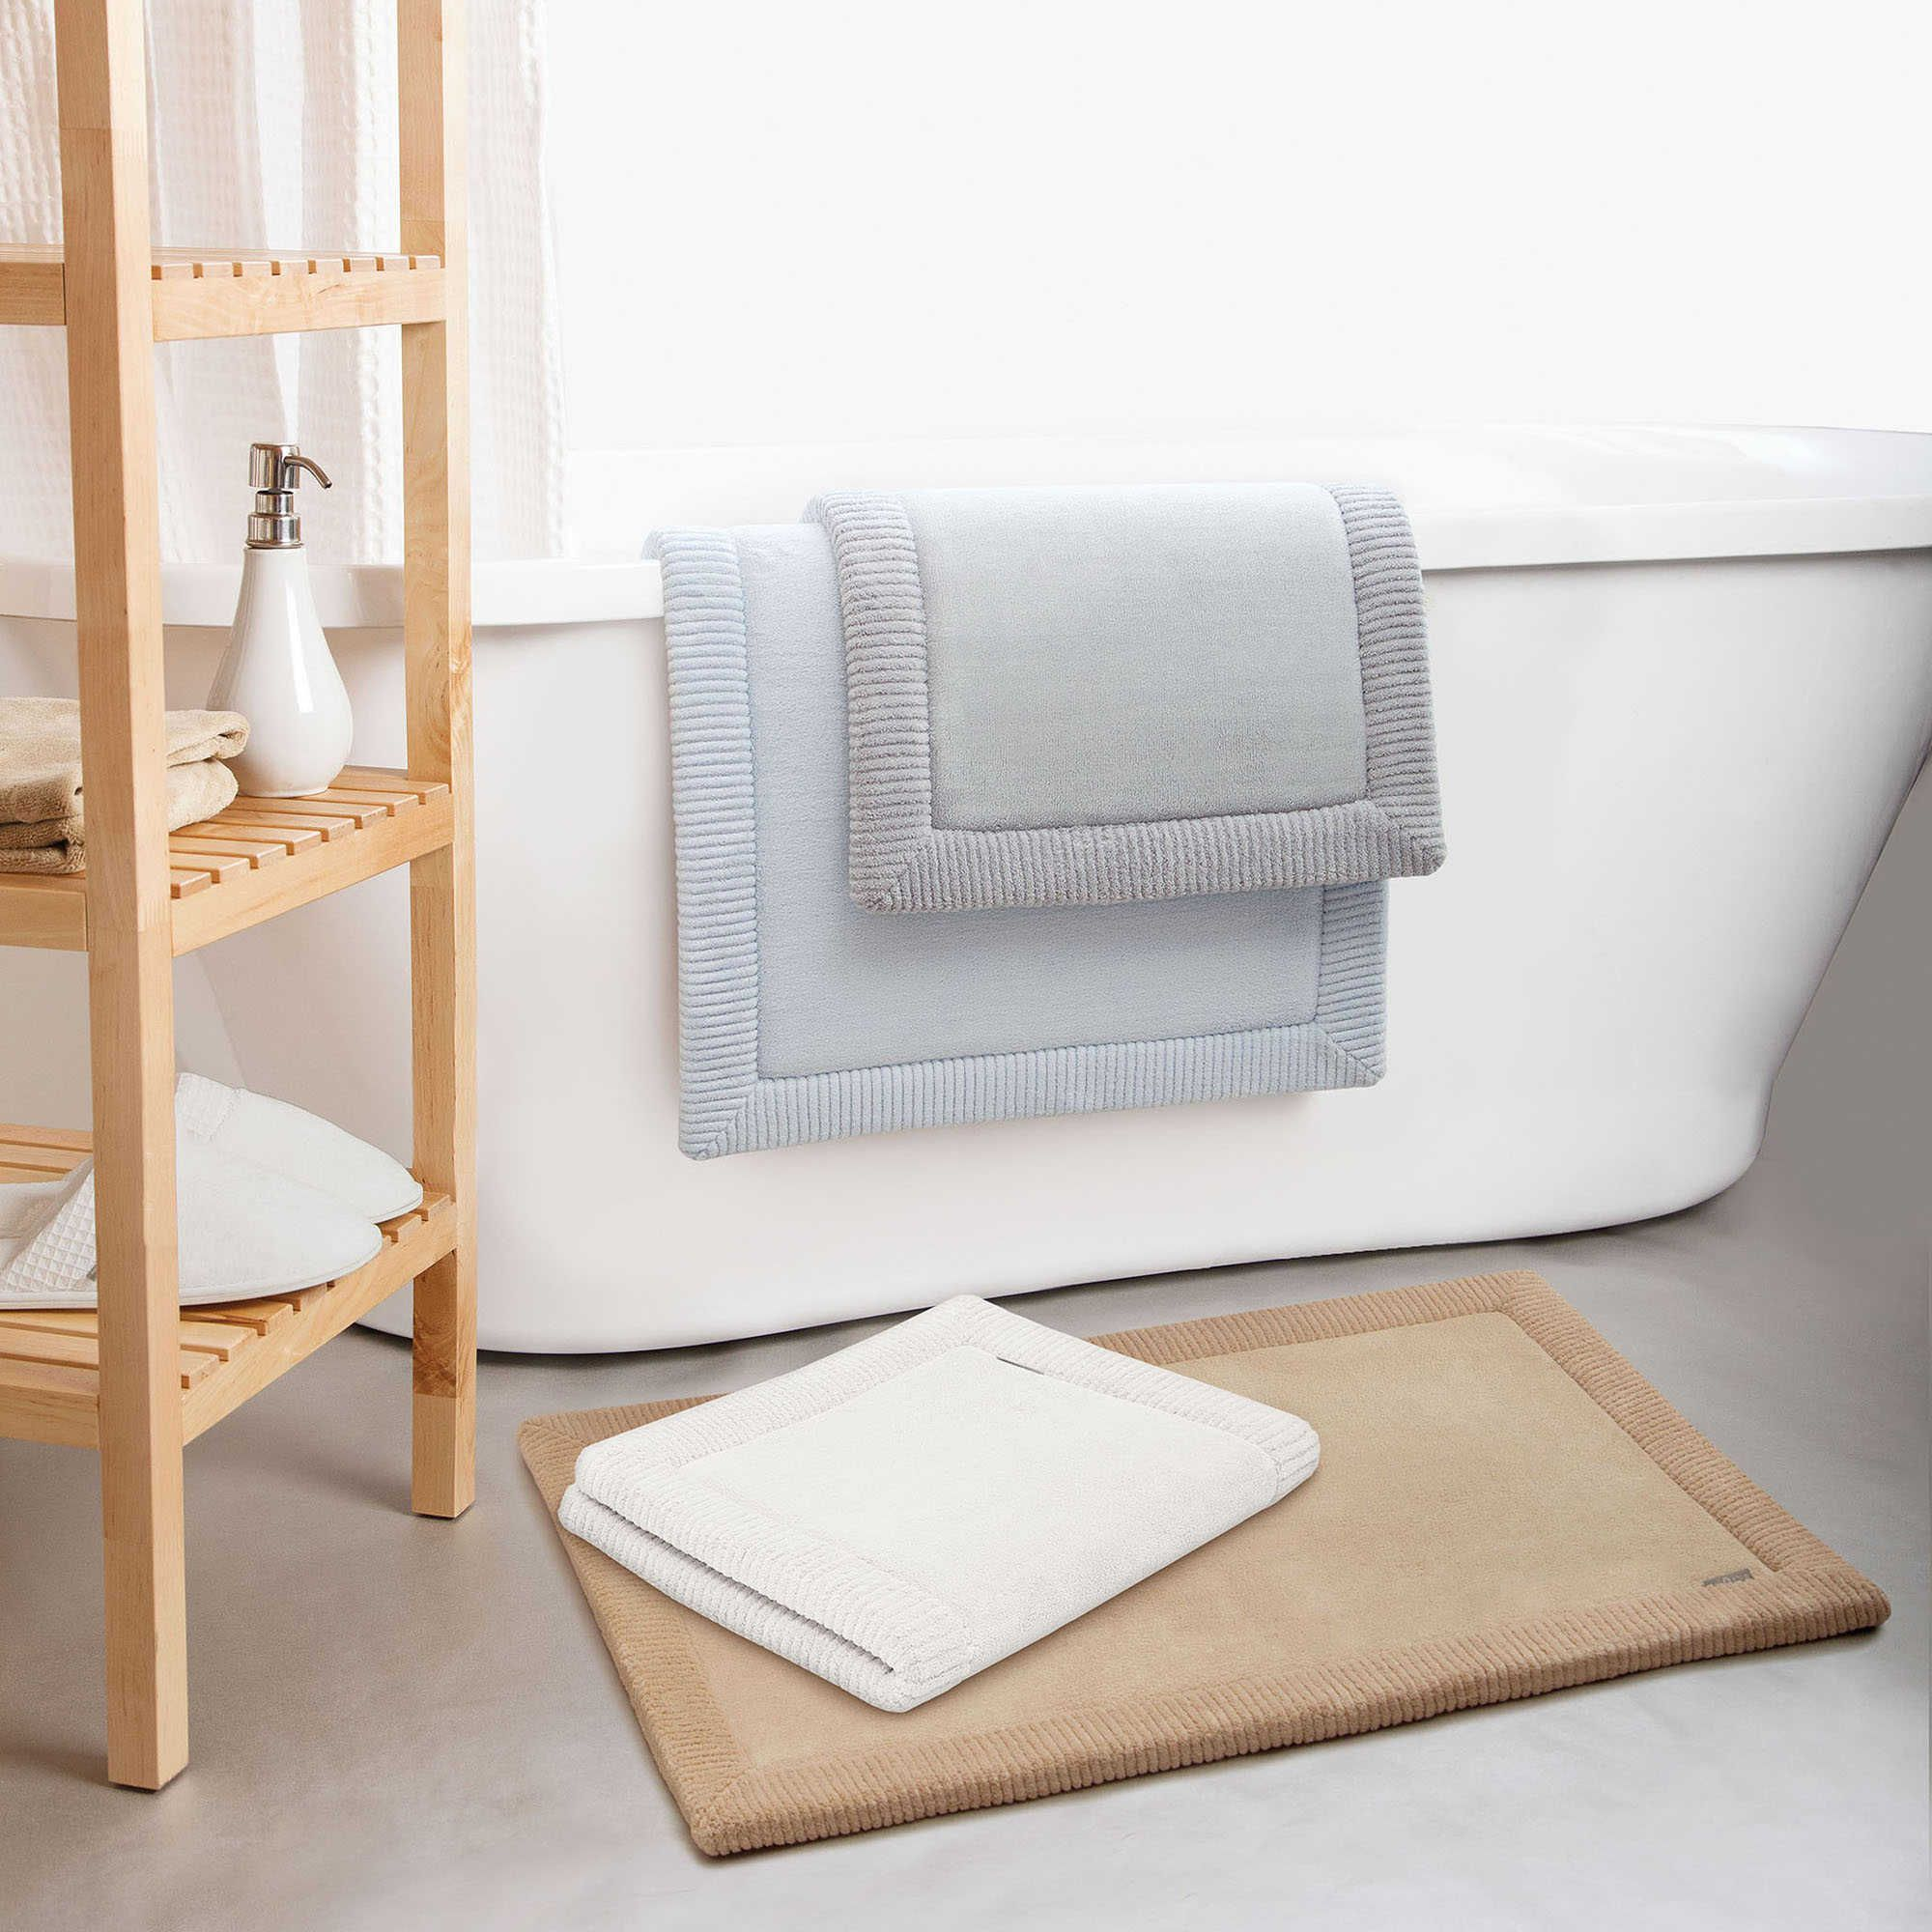 Microdry Memory Foam Bath Rug With Griptex Base Unique Bath